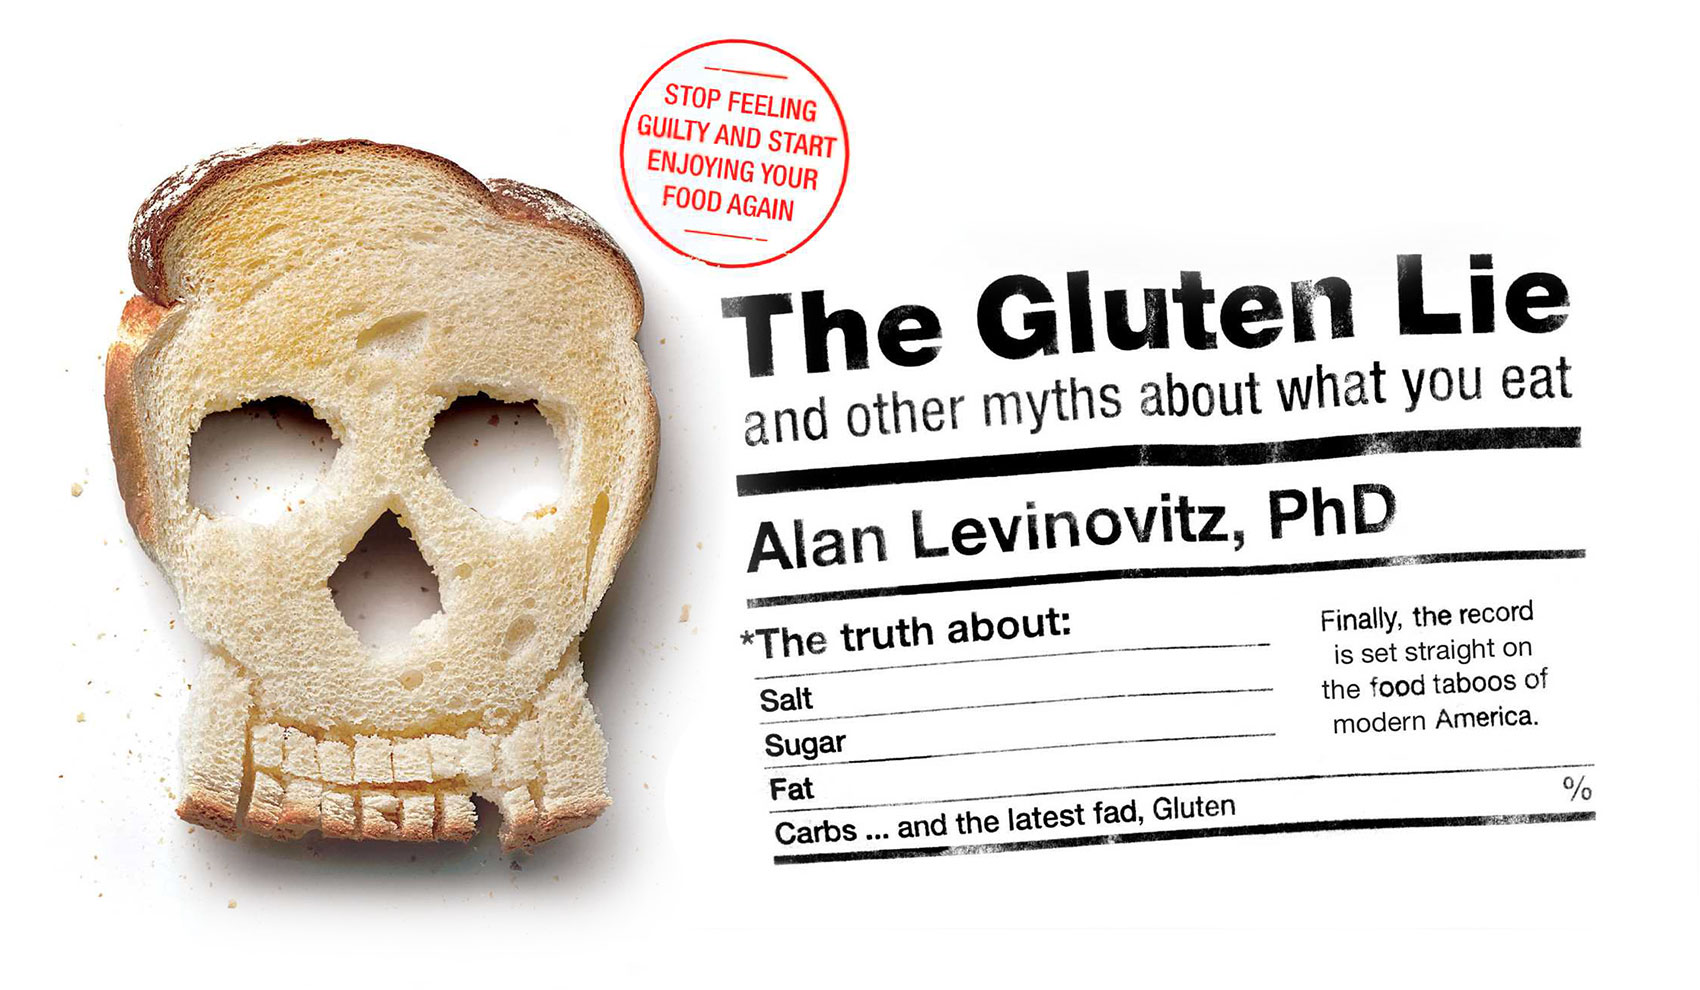 gluten-lie-recompostion-from-cover-elements.jpg